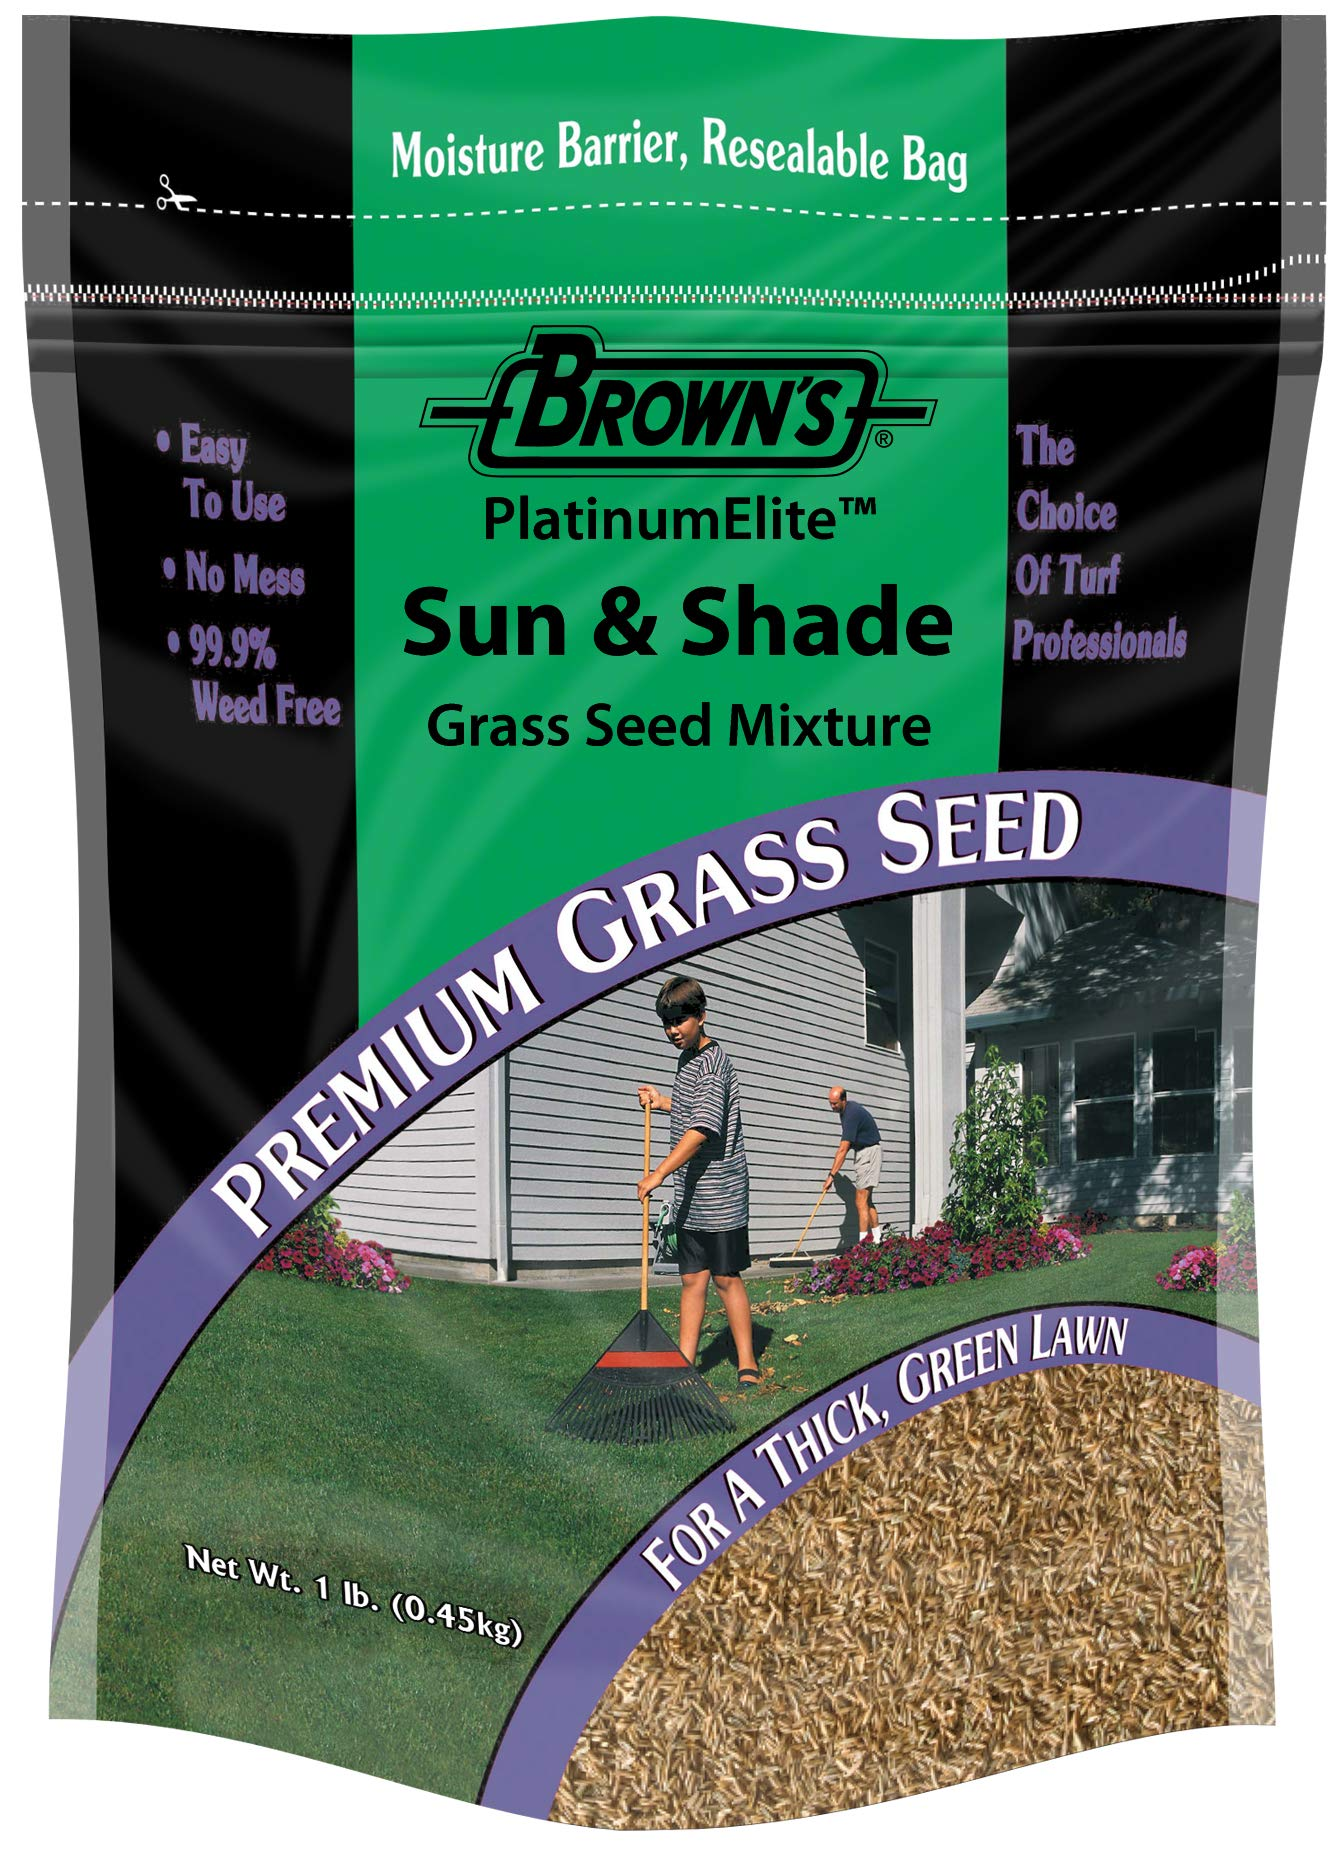 F.M. Brown's PlatinumElite Sun and Shade Grass Seed Mixture, 1 lb. | 99.9% Weed Free, Fast-Growing Perennial Seeds for Beautiful Lawns by F.M. Brown's